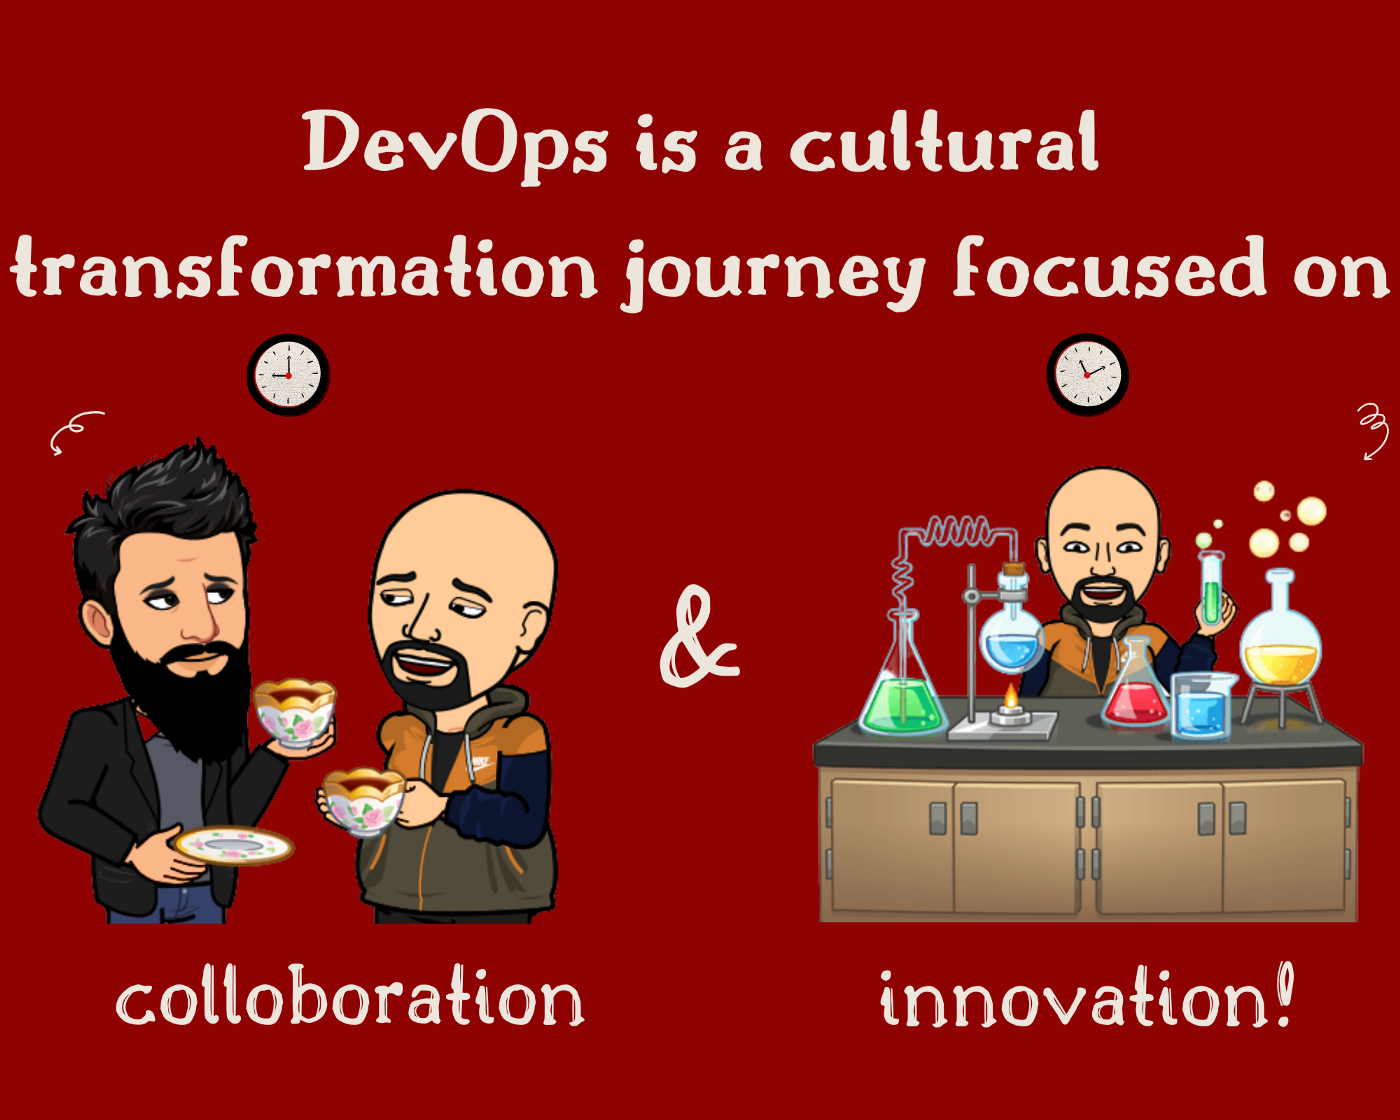 DevOps is a cultural transformation journey focused on collaboration and innovation. | @iSwamiK